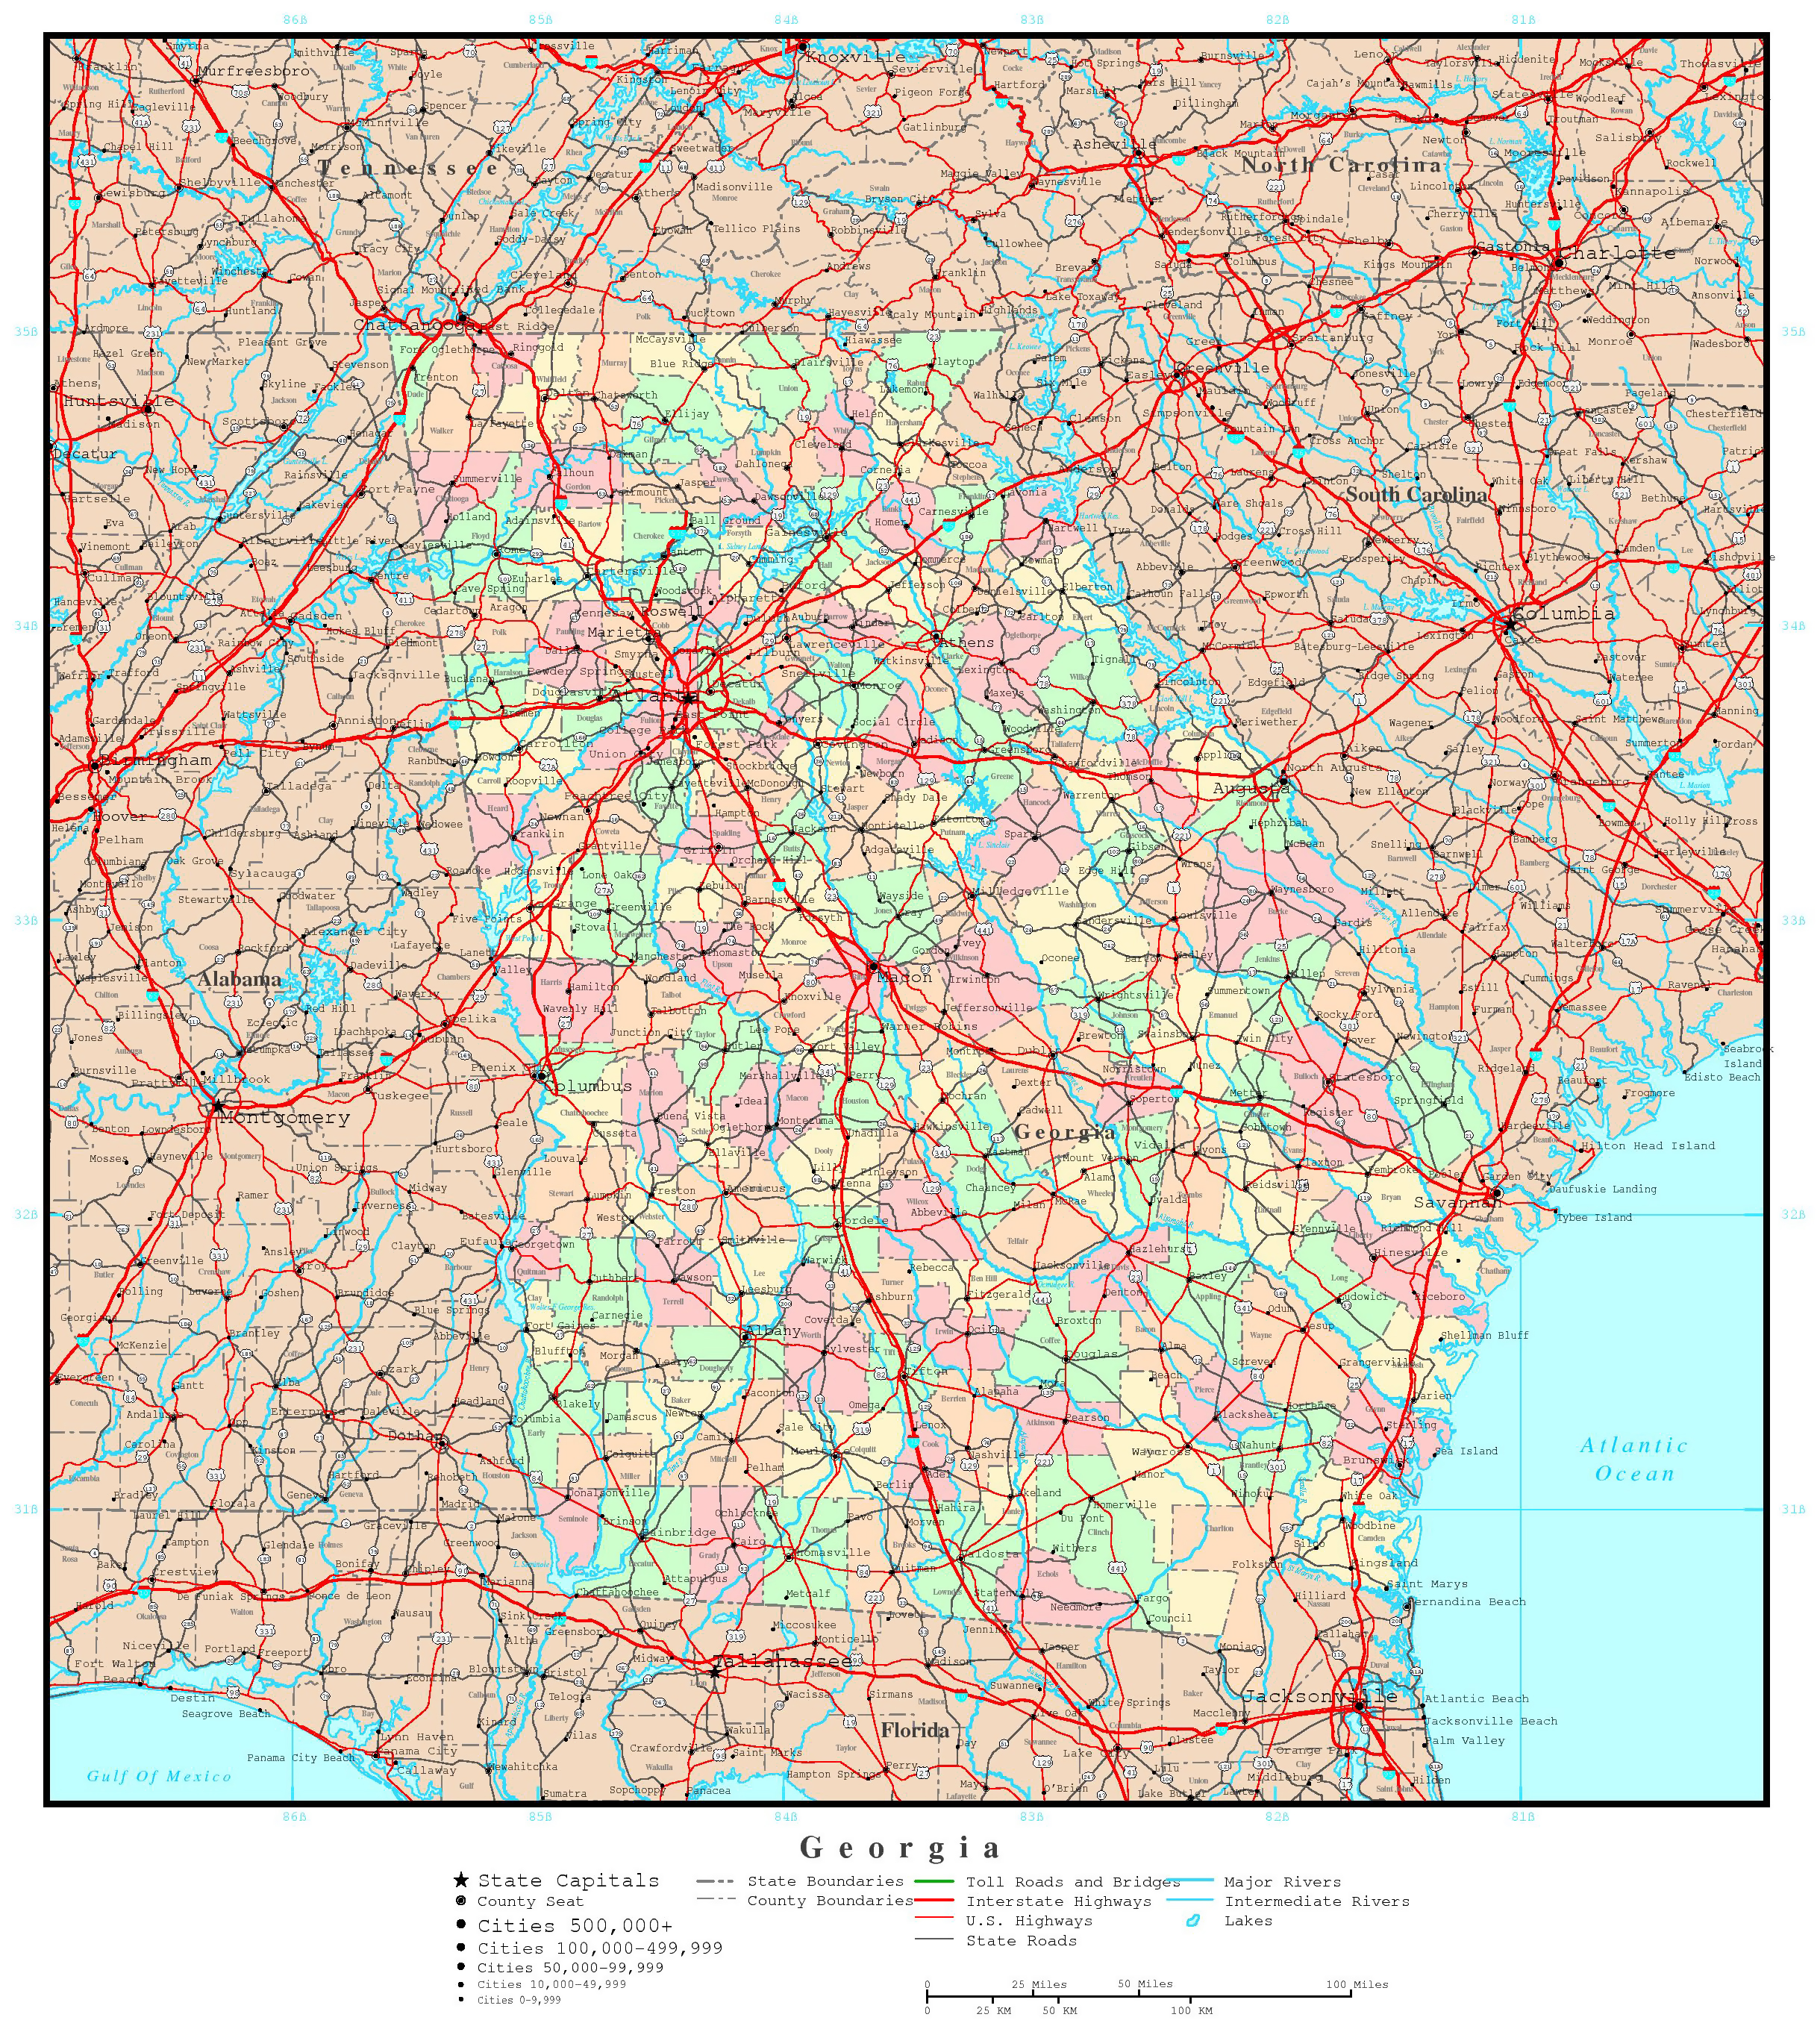 County Map Of Georgia With Roads.Large Administrative Map Of Georgia State With Roads Highways And